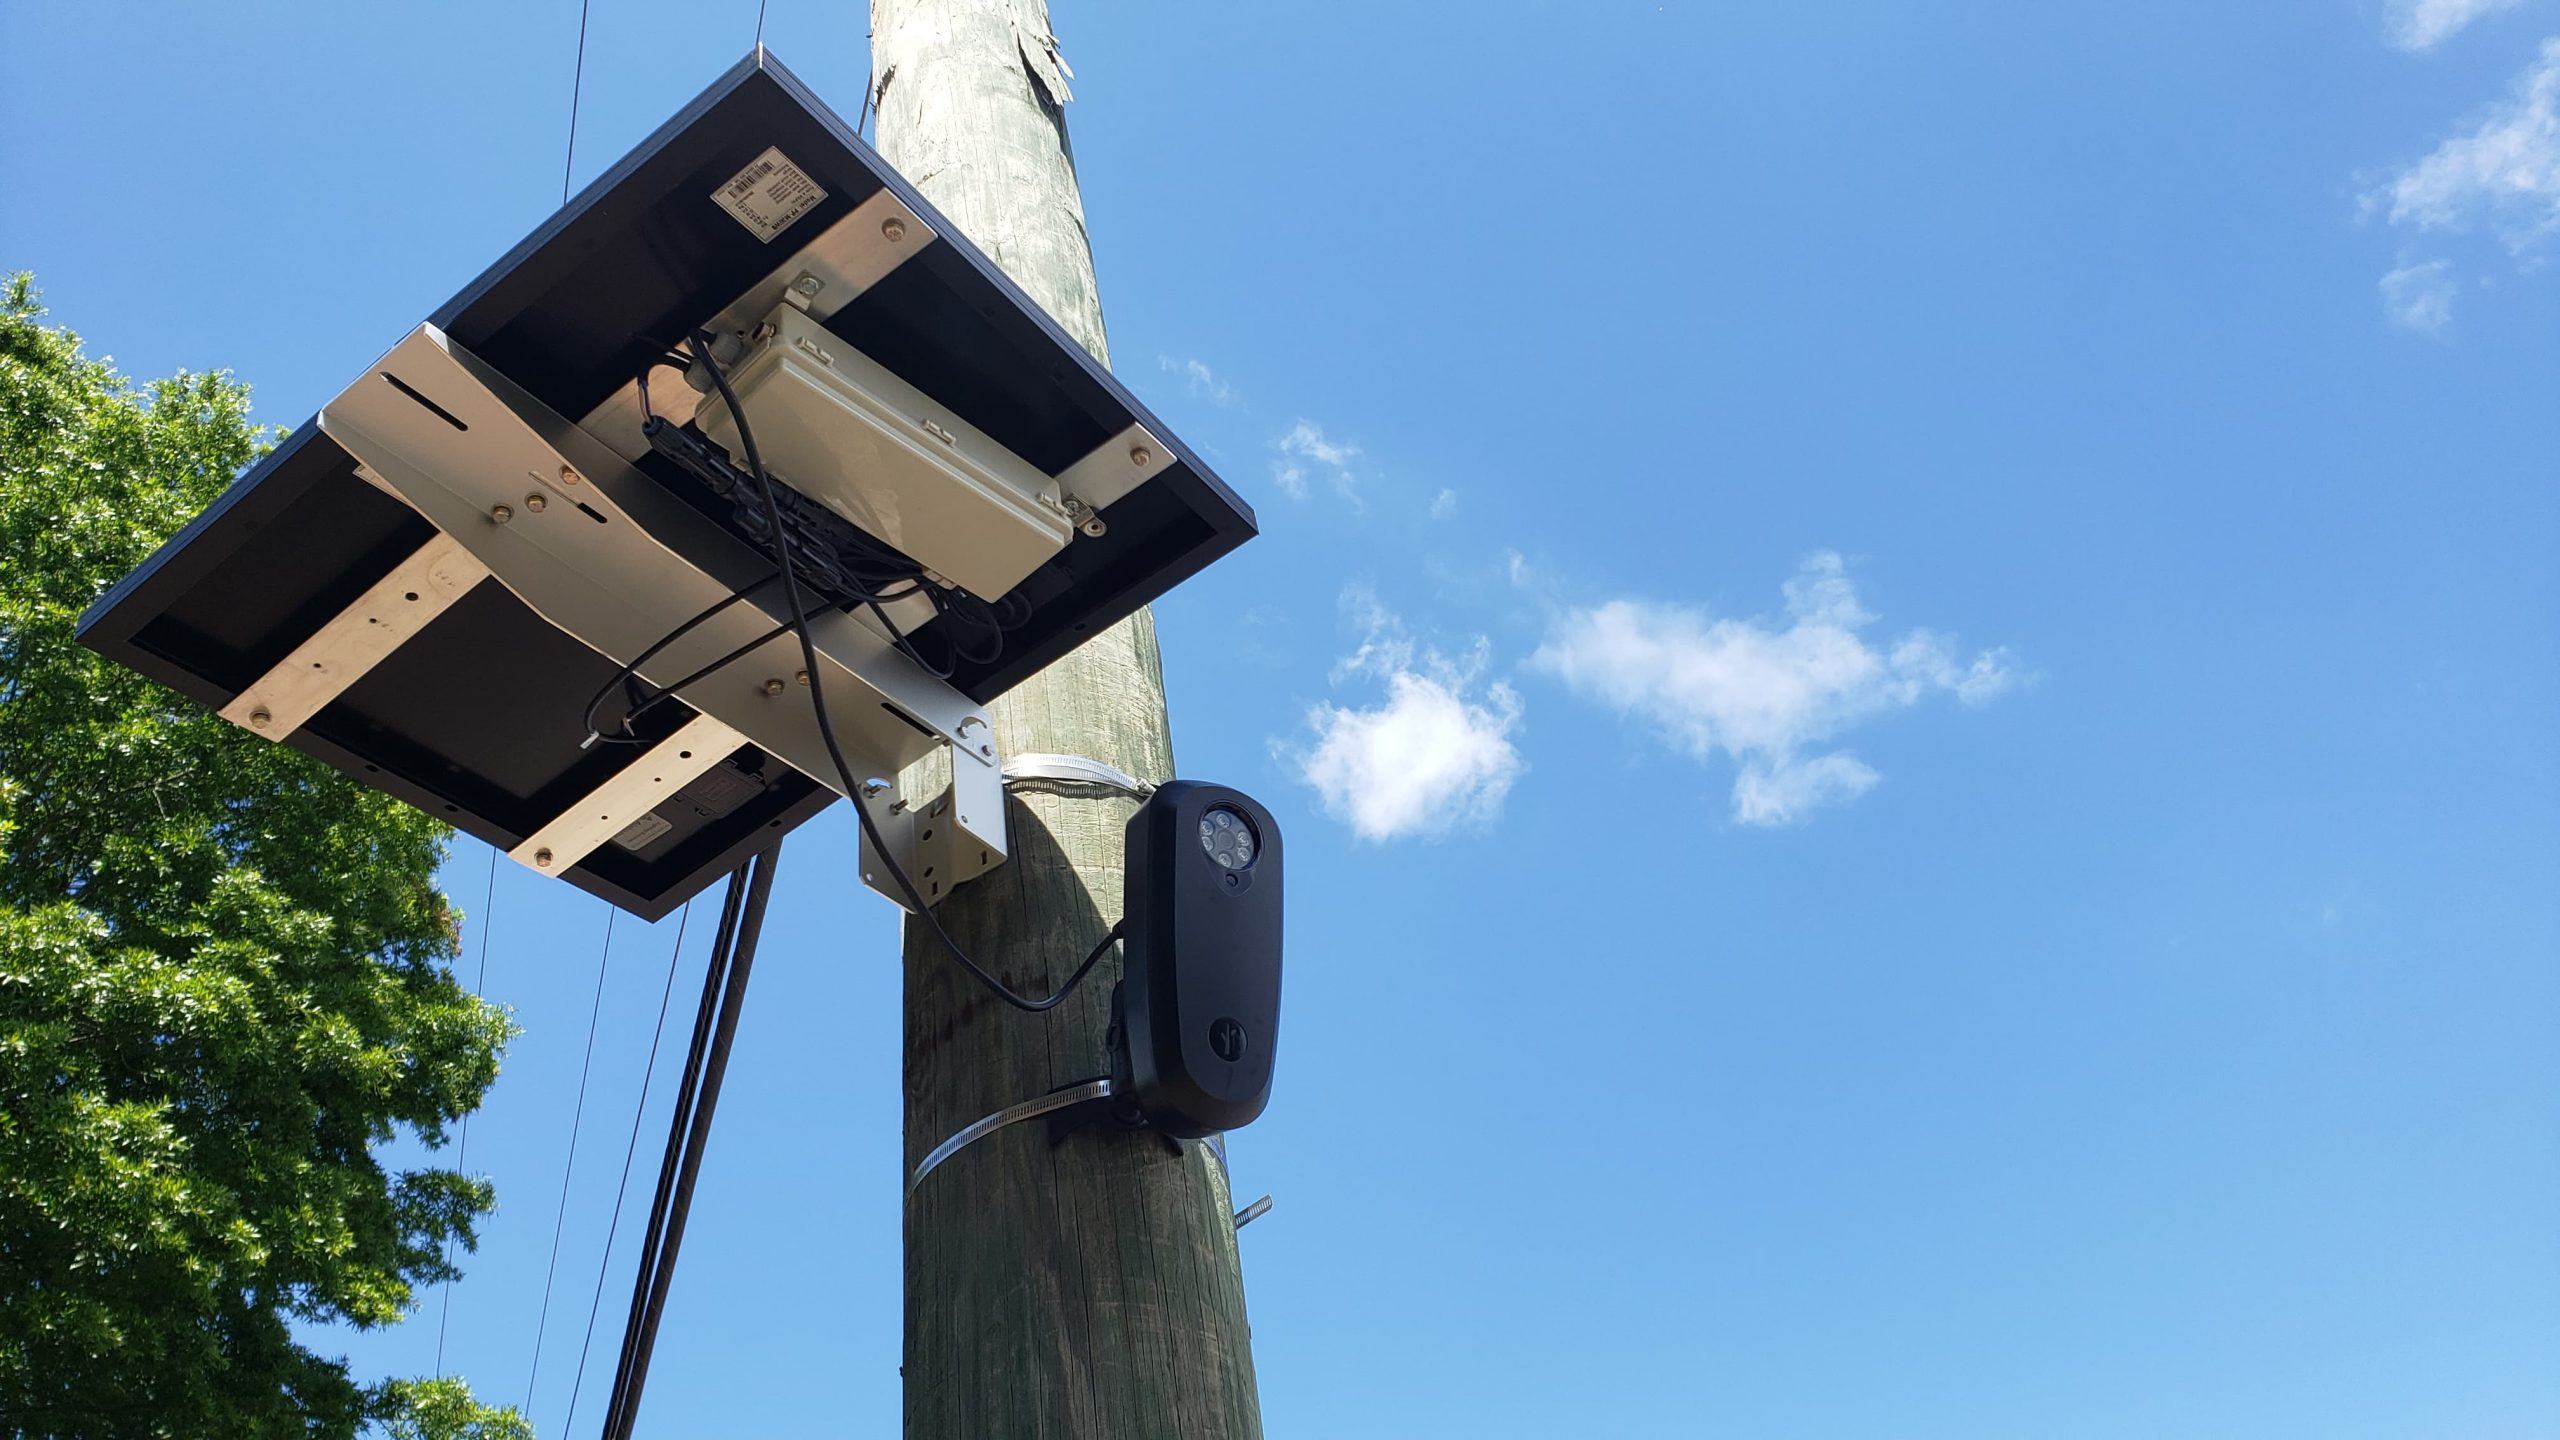 2 stolen vehicles recovered in 1 day after installation of Flock cameras in Center Point